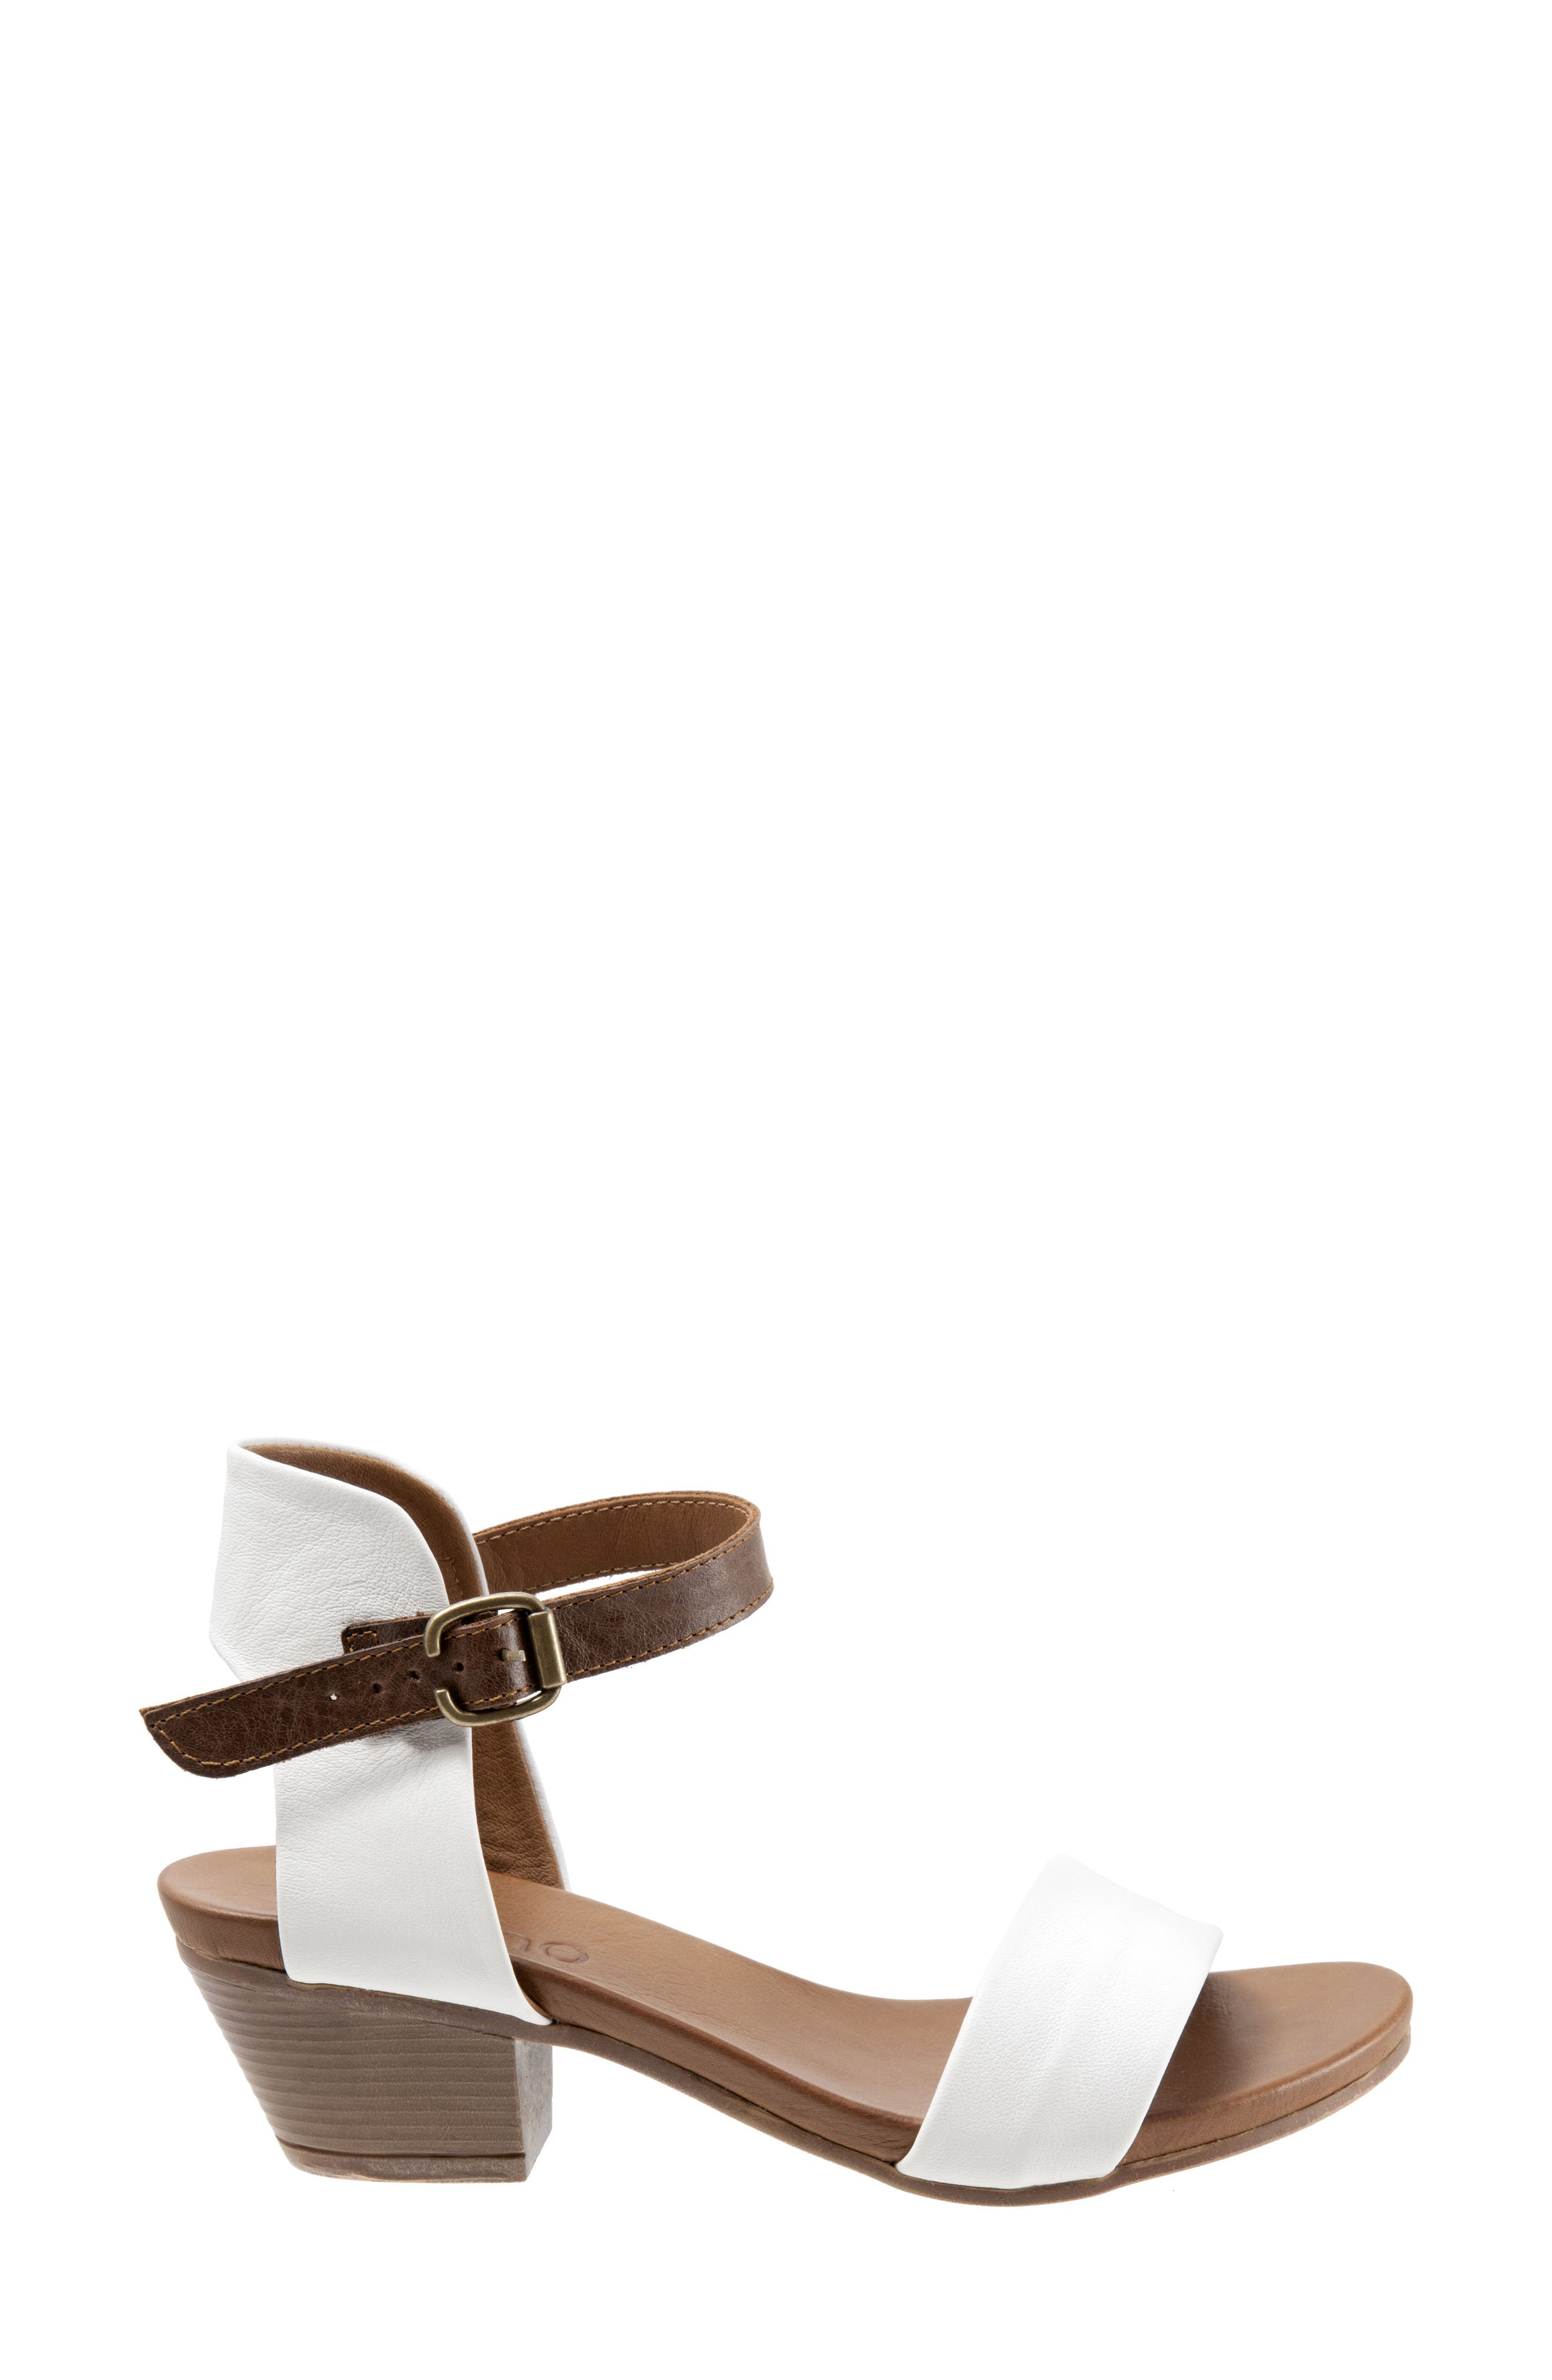 Sue Sandal,                             Alternate thumbnail 3, color,                             White Leather